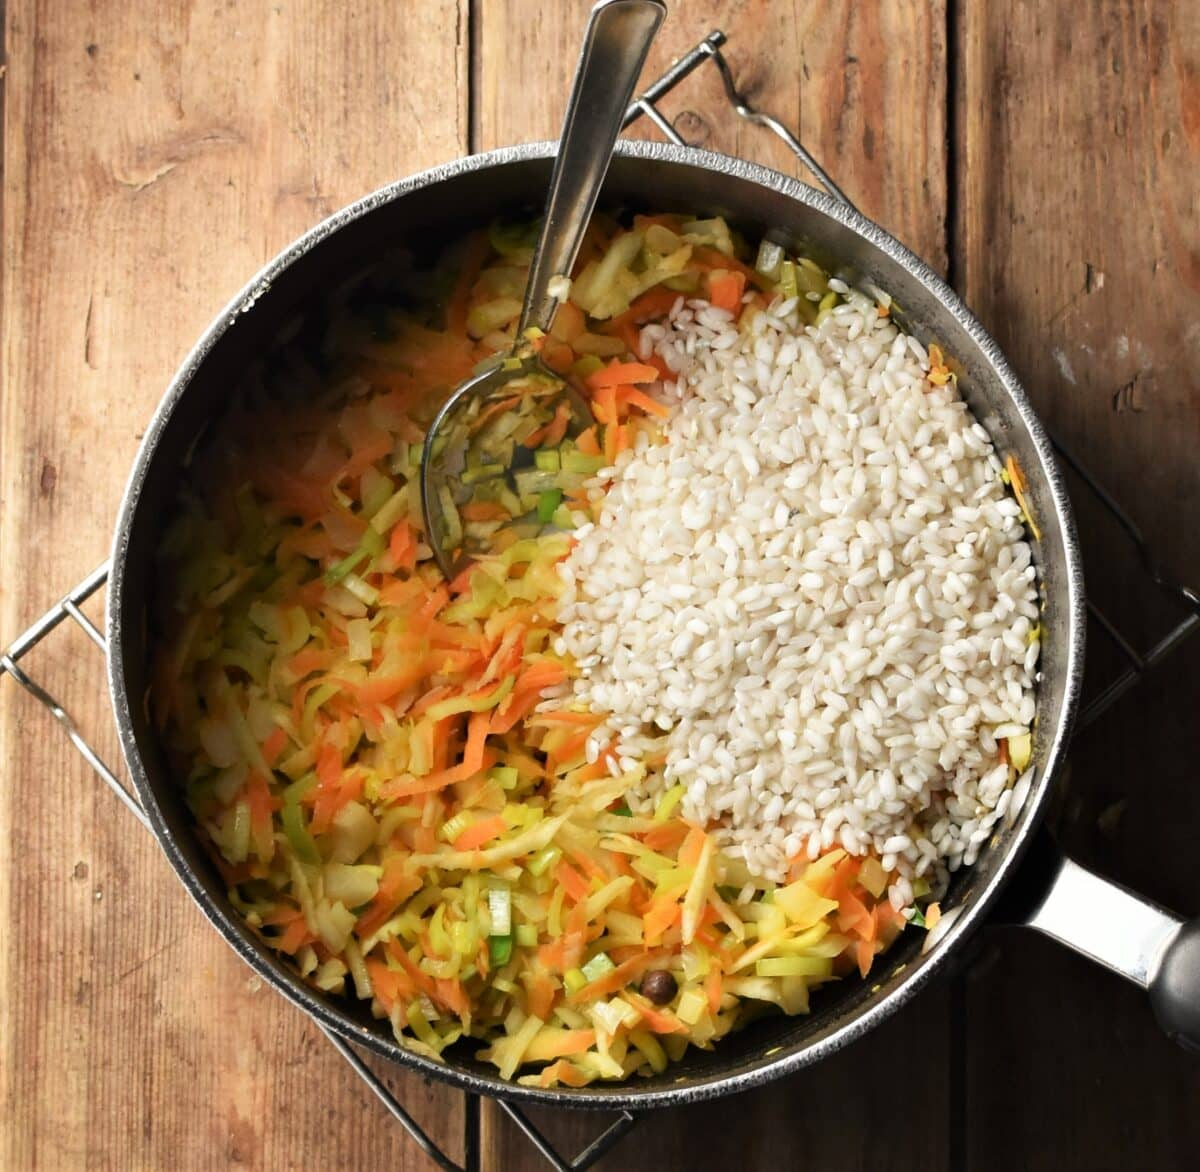 Grated vegetables and rice on large pot with spoon.